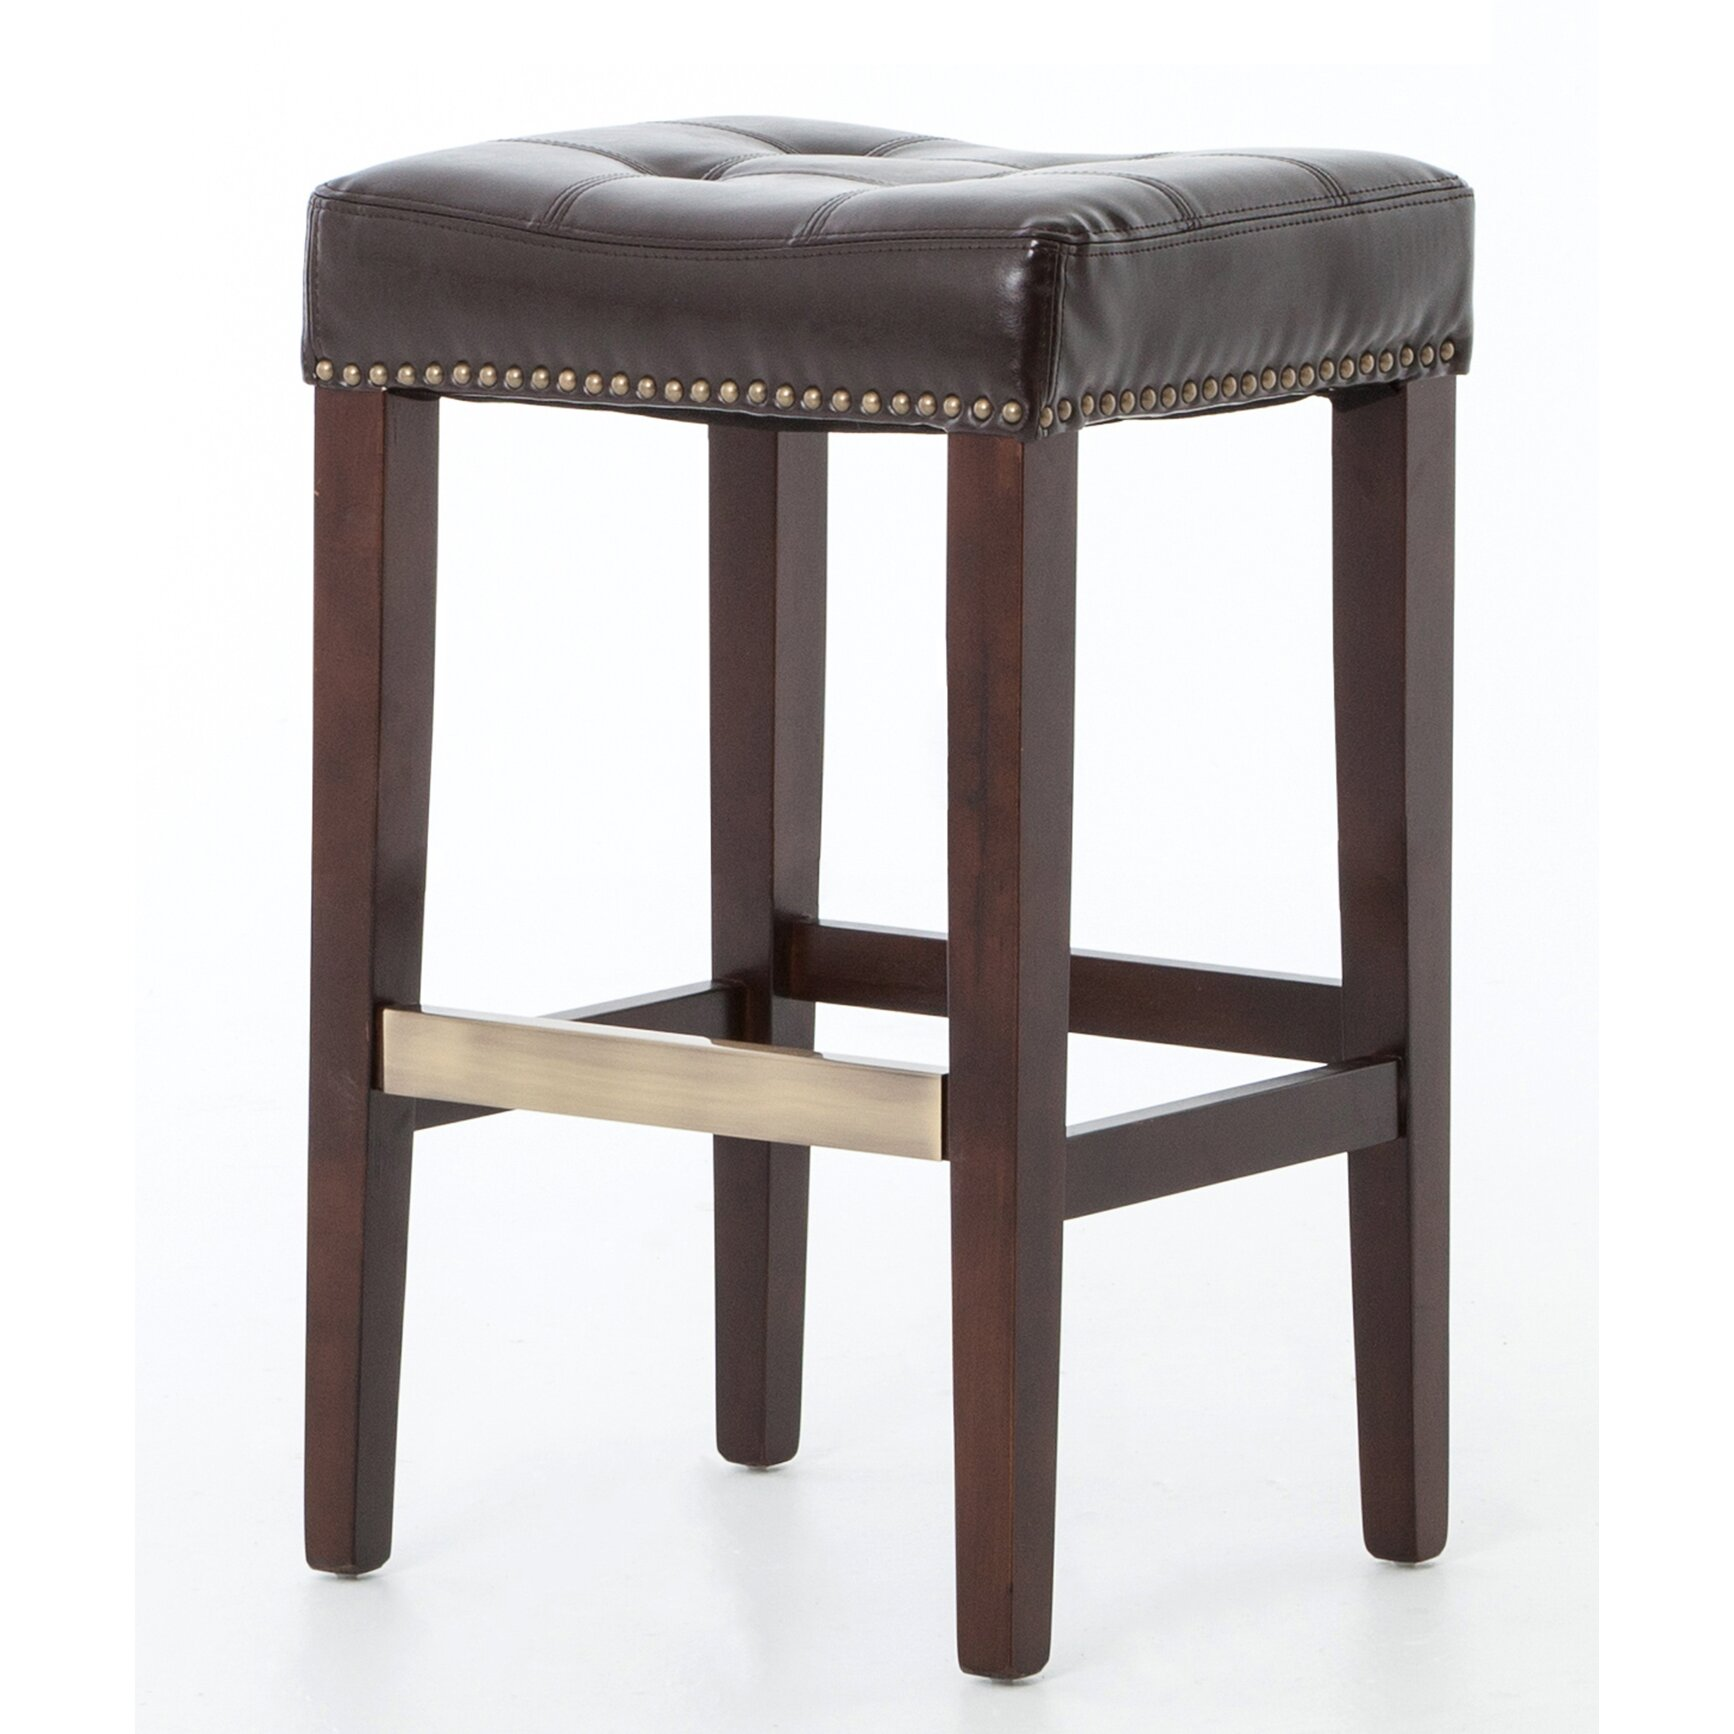 Design Tree Home Sean 26 Bar Stool Reviews Wayfair